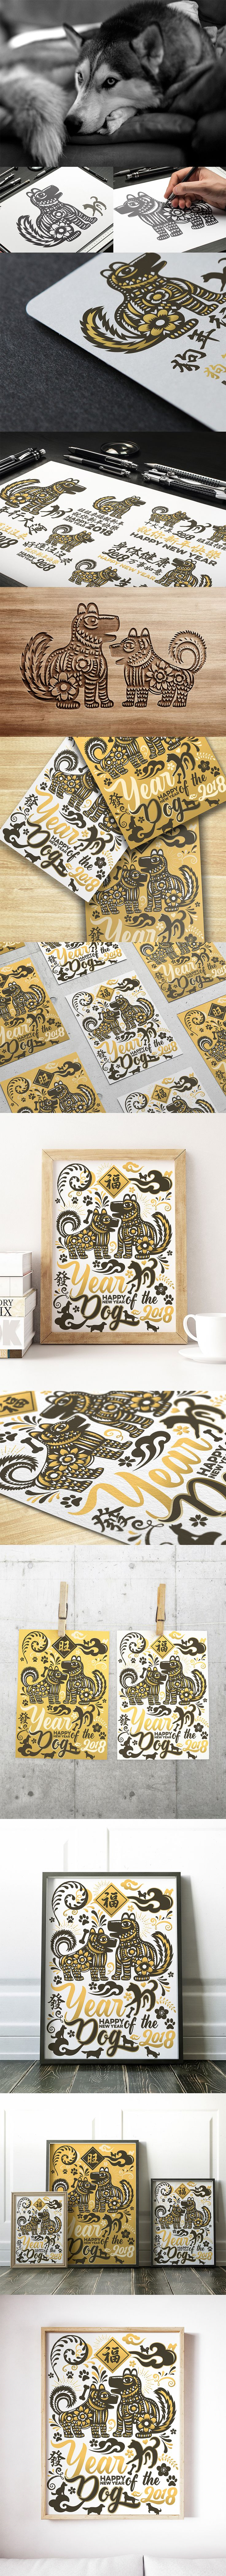 Chinese new year 2018 year of the Dog  This is a Vector Illustrations of a Chinese new year 2018 Year of the Dog which include 2 different design poster / card. Paper cutting is a traditional art done by Chinese in China. This Chinese new year 2018 Year of the dog can be easily used in Adobe and illustrator, Fully layered, Smart Objects and it VECTOR !  #dog #puppy #husky #newyear #dogyear #chinese #cloud #gold #foil #card #poster #chinese new year #2018 #cny